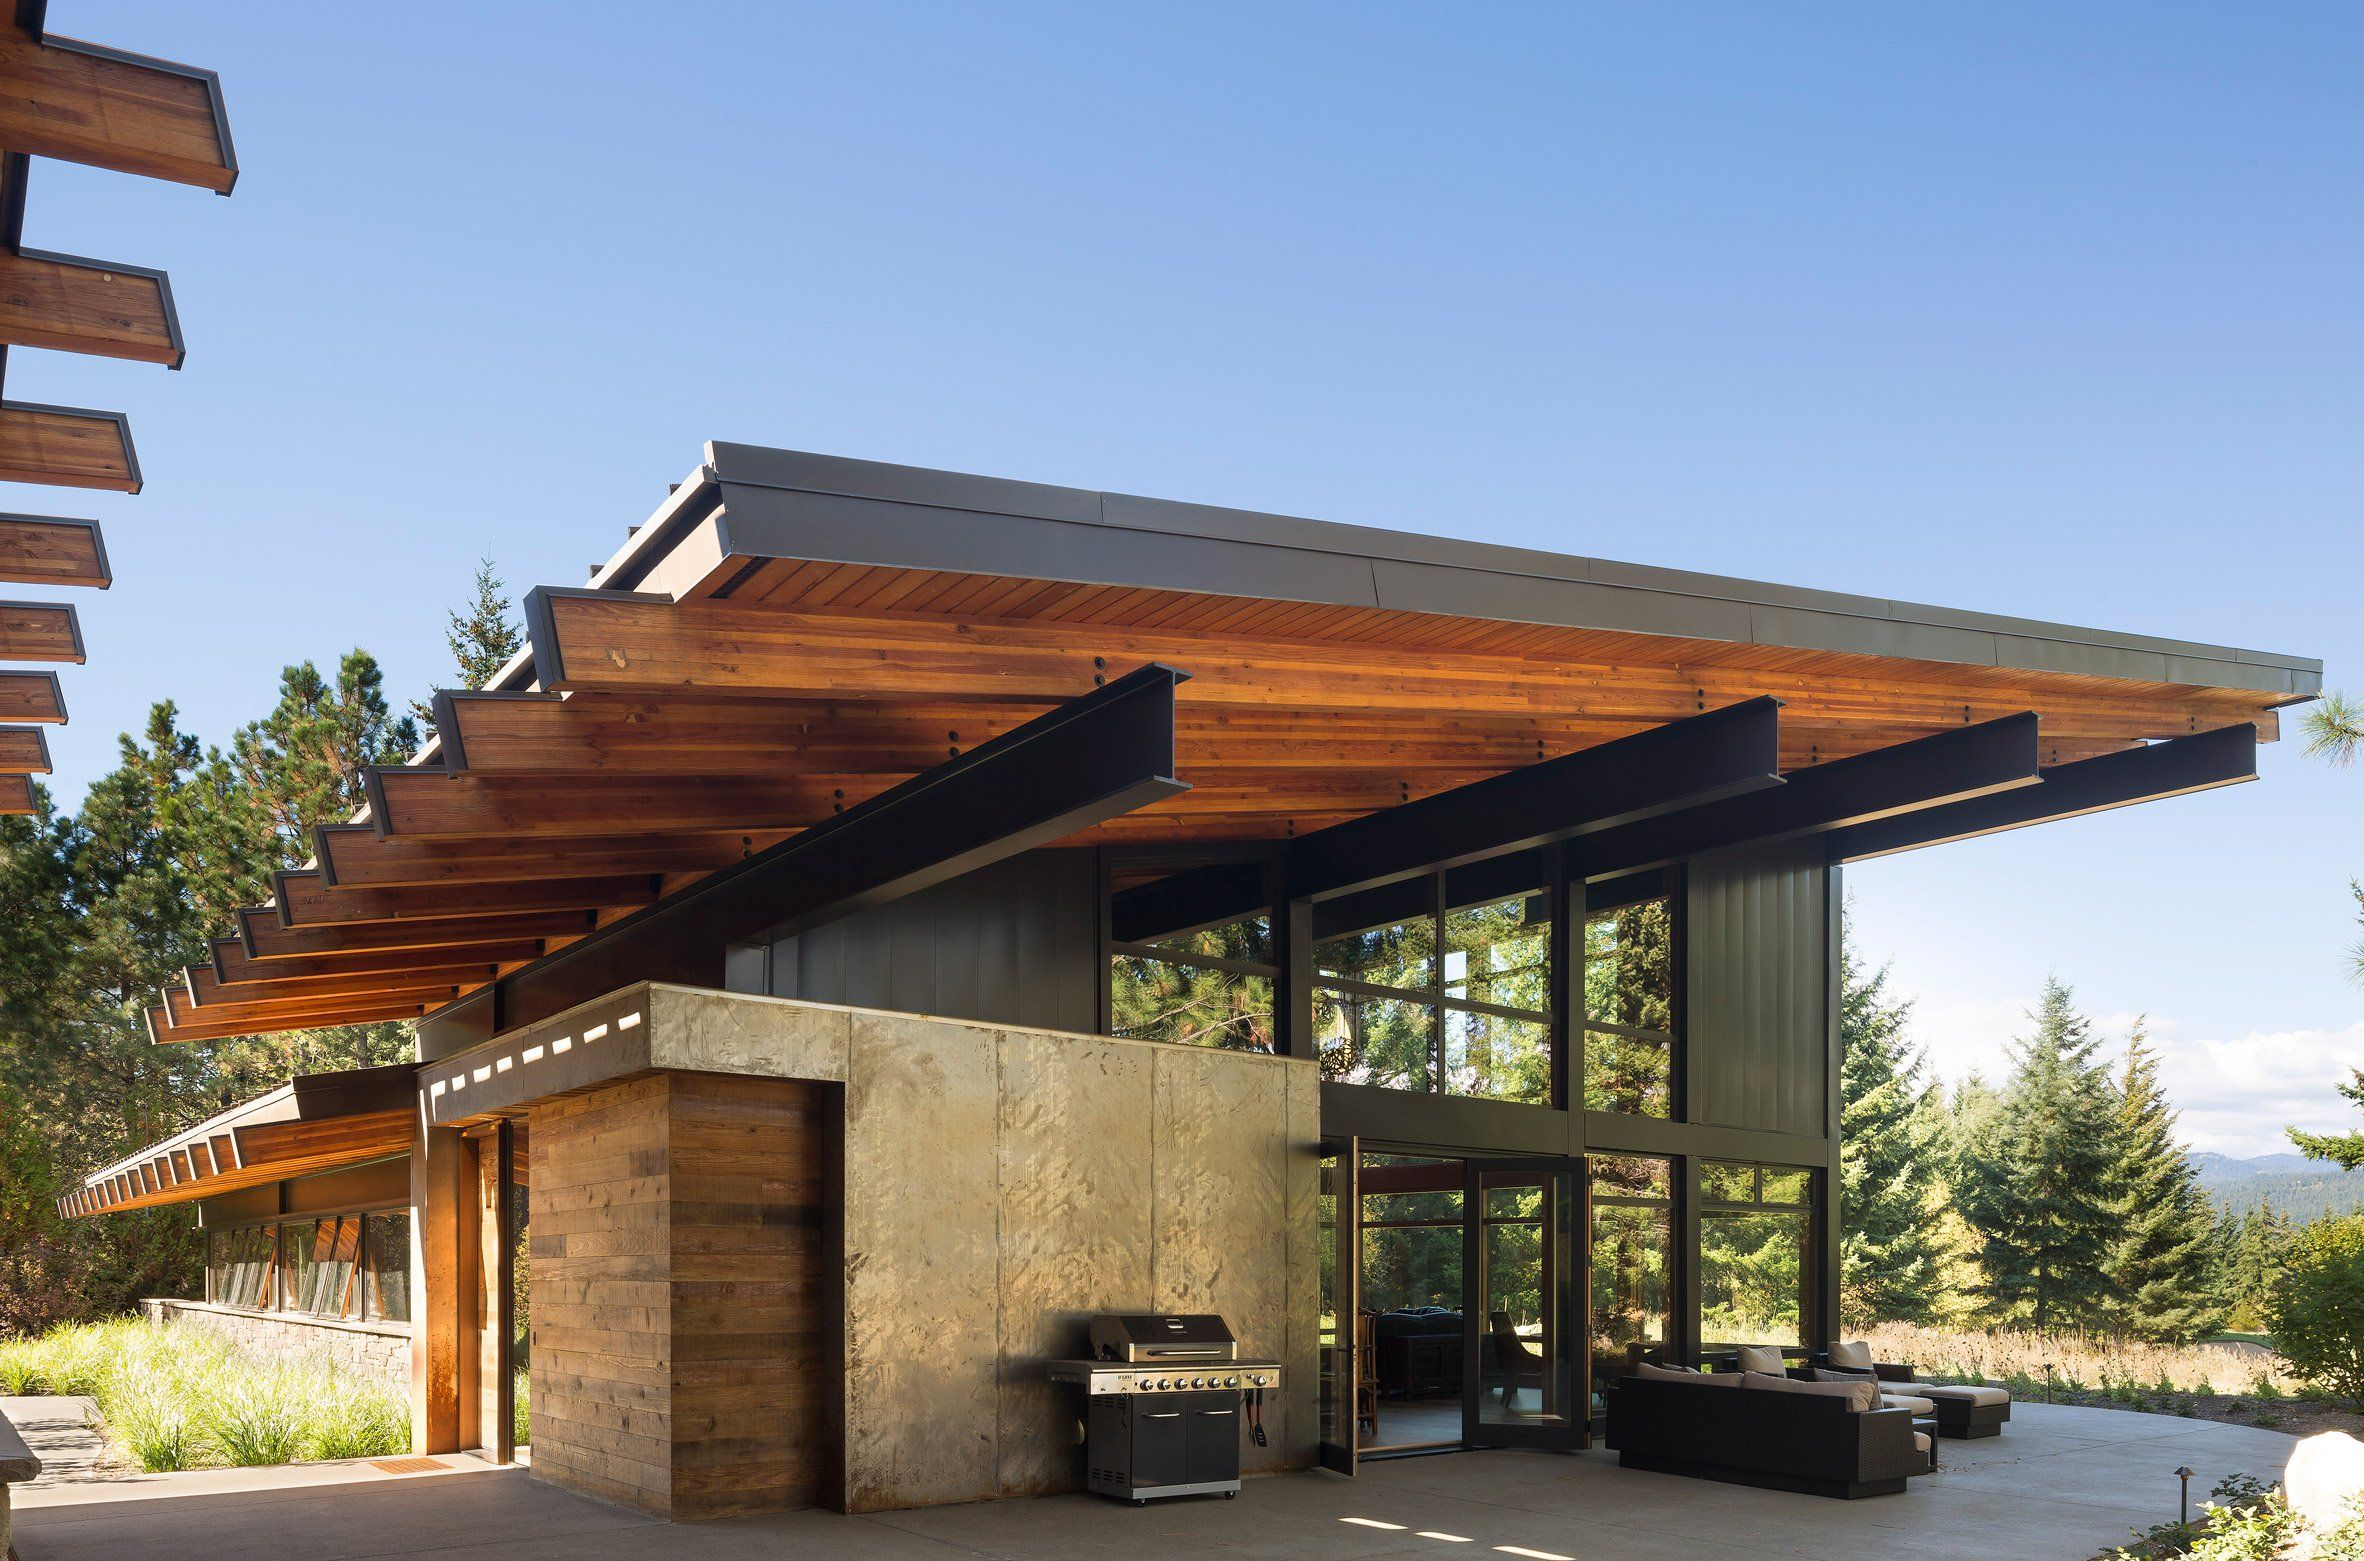 Steel Beams Support Dramatic Roof Overhangs At Washington State Retreat By Coates Design Architect Design Architecture Modern Architecture